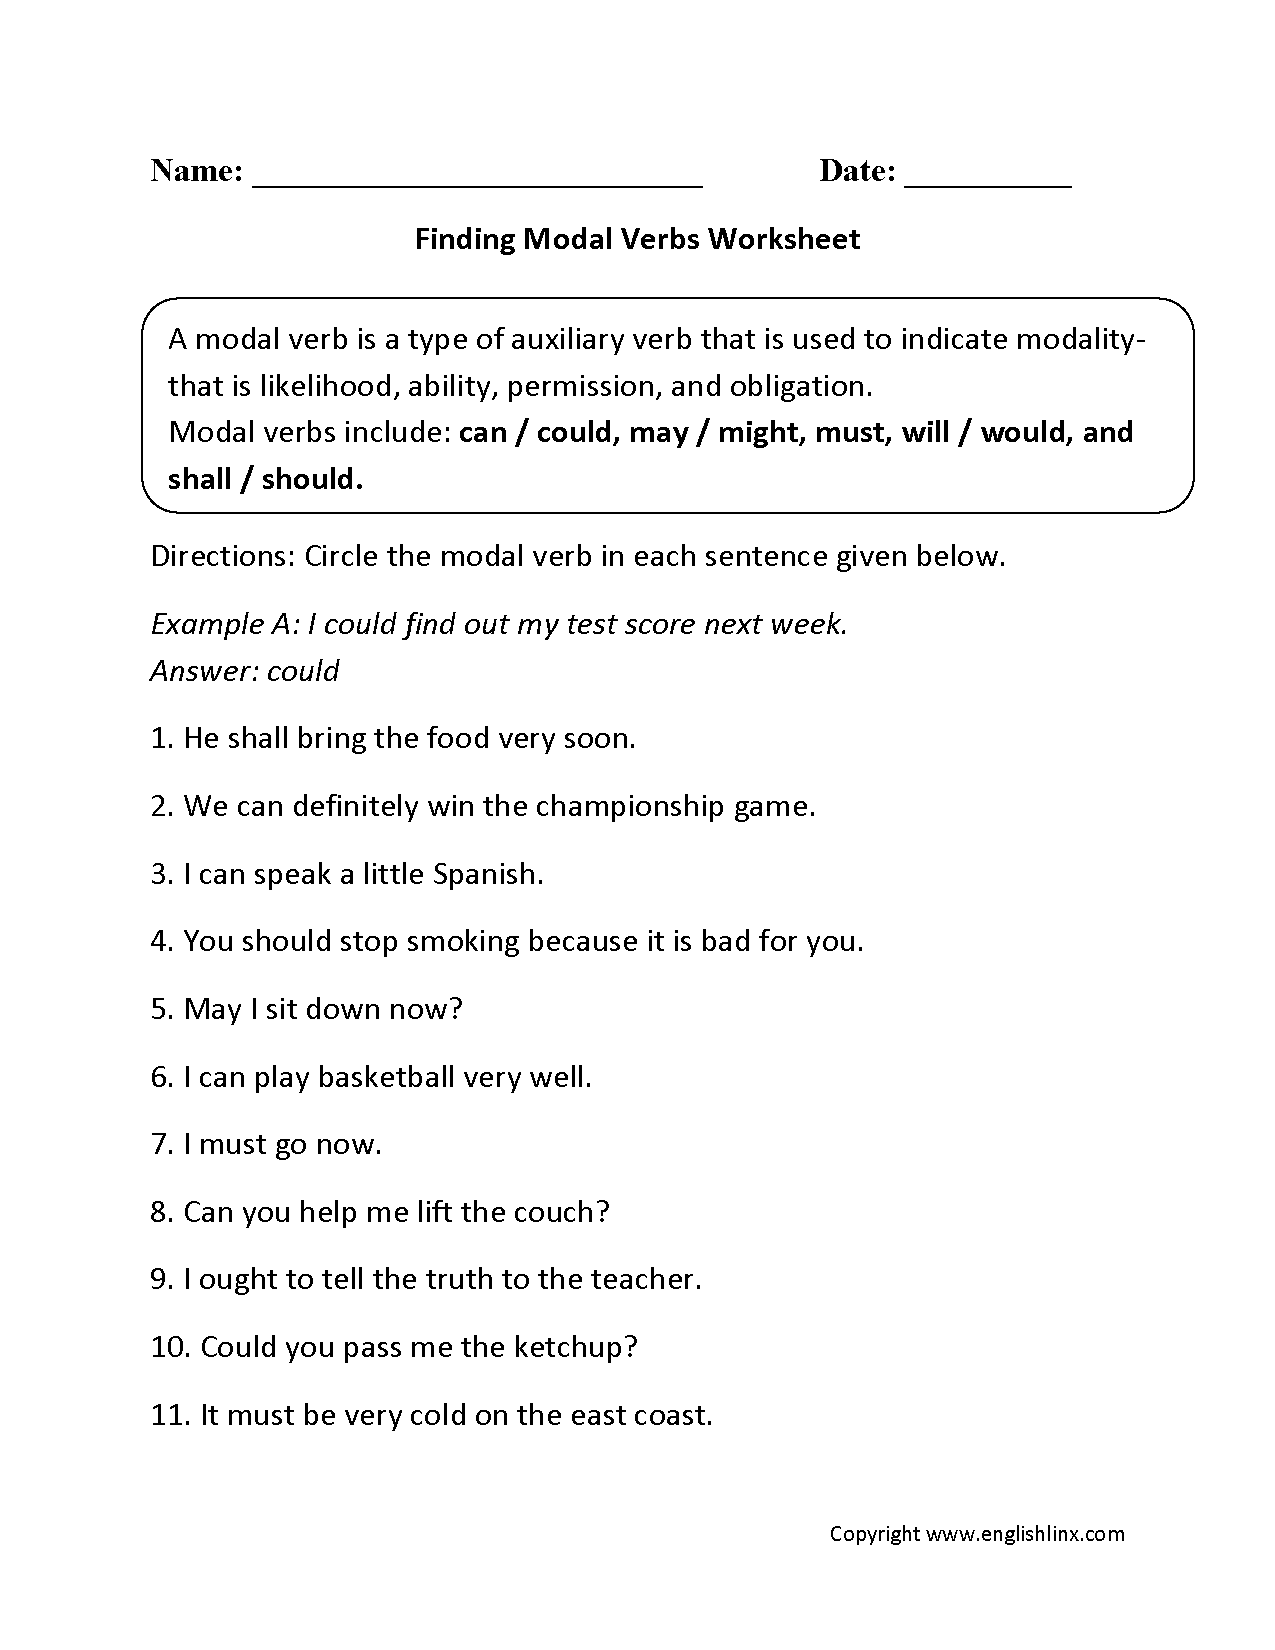 Verbs Worksheets | Modal Verbs Worksheets